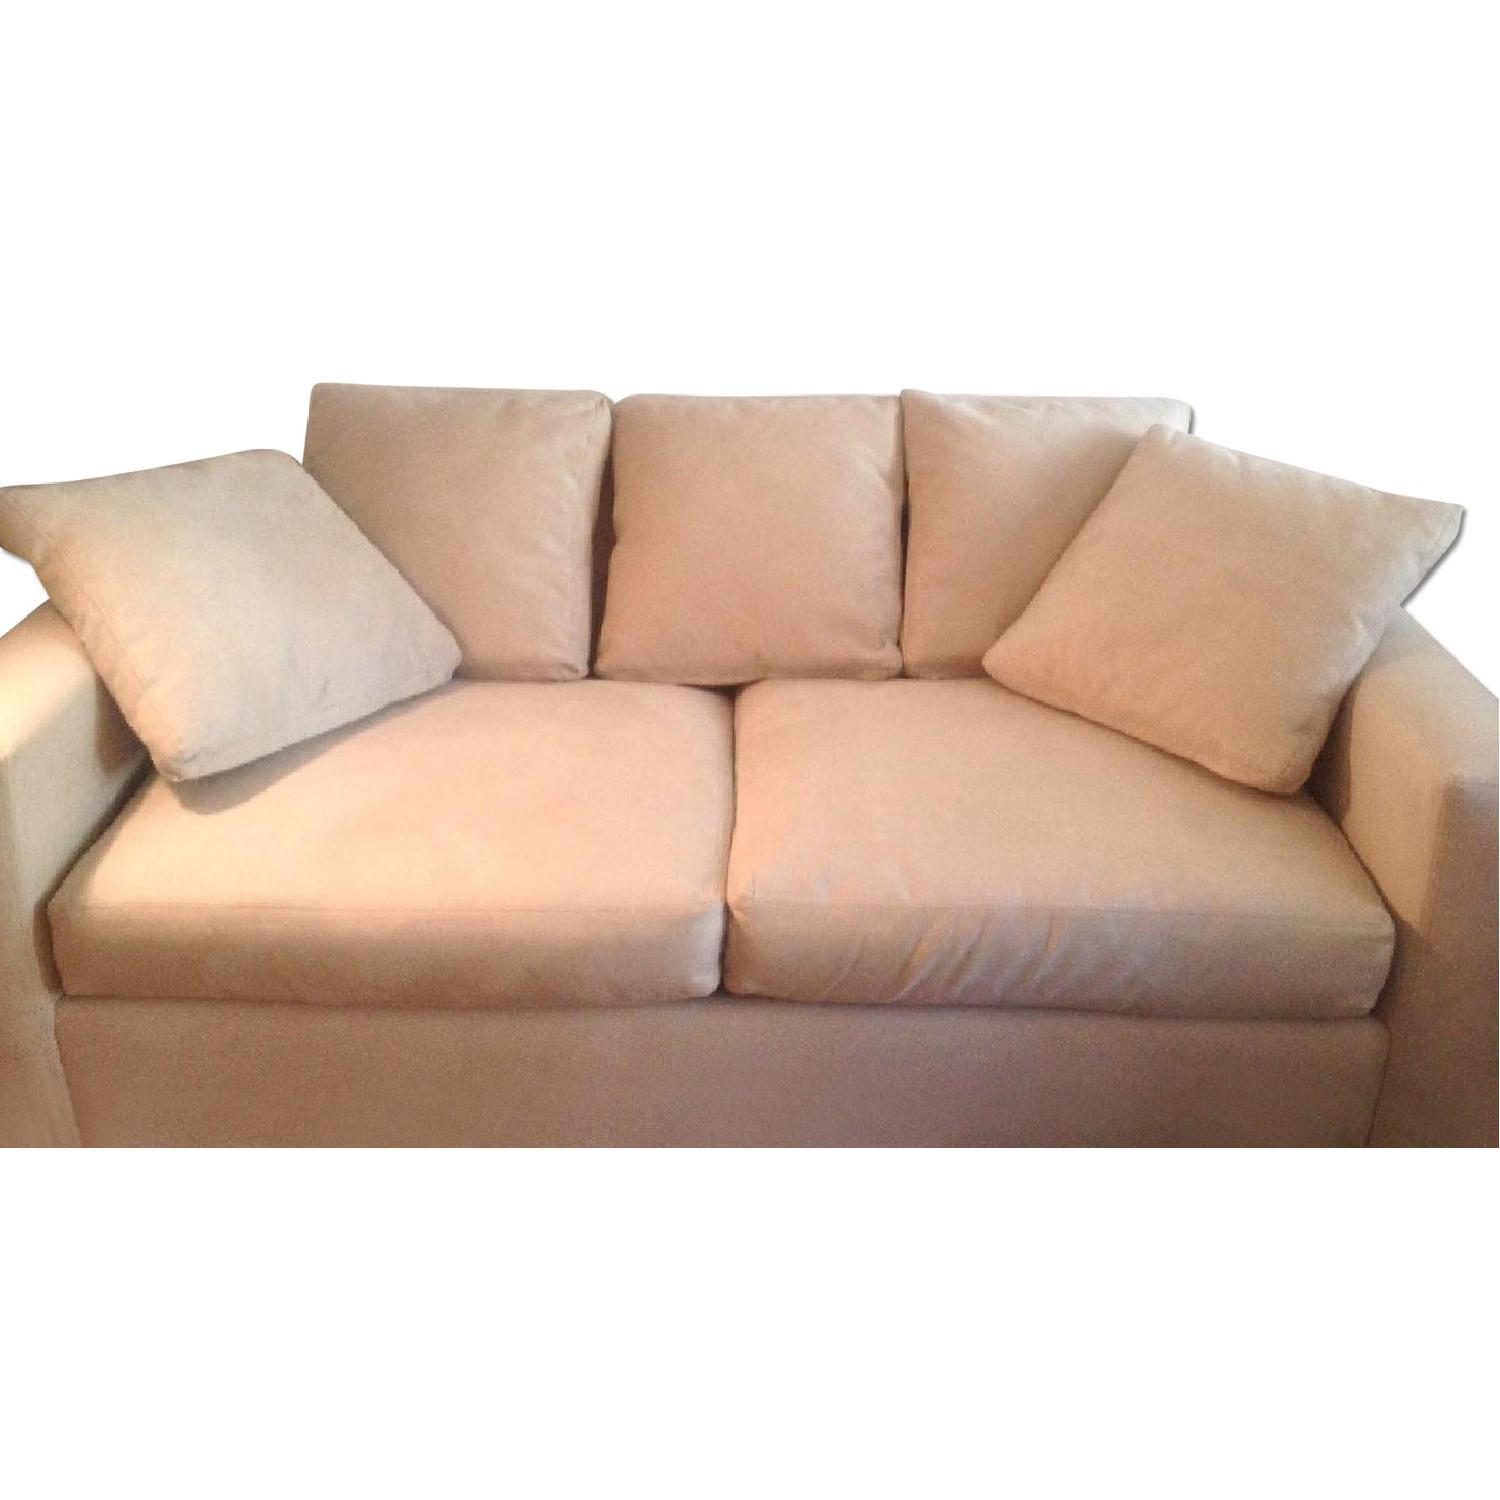 Room & Board Microsuede Couch - image-3